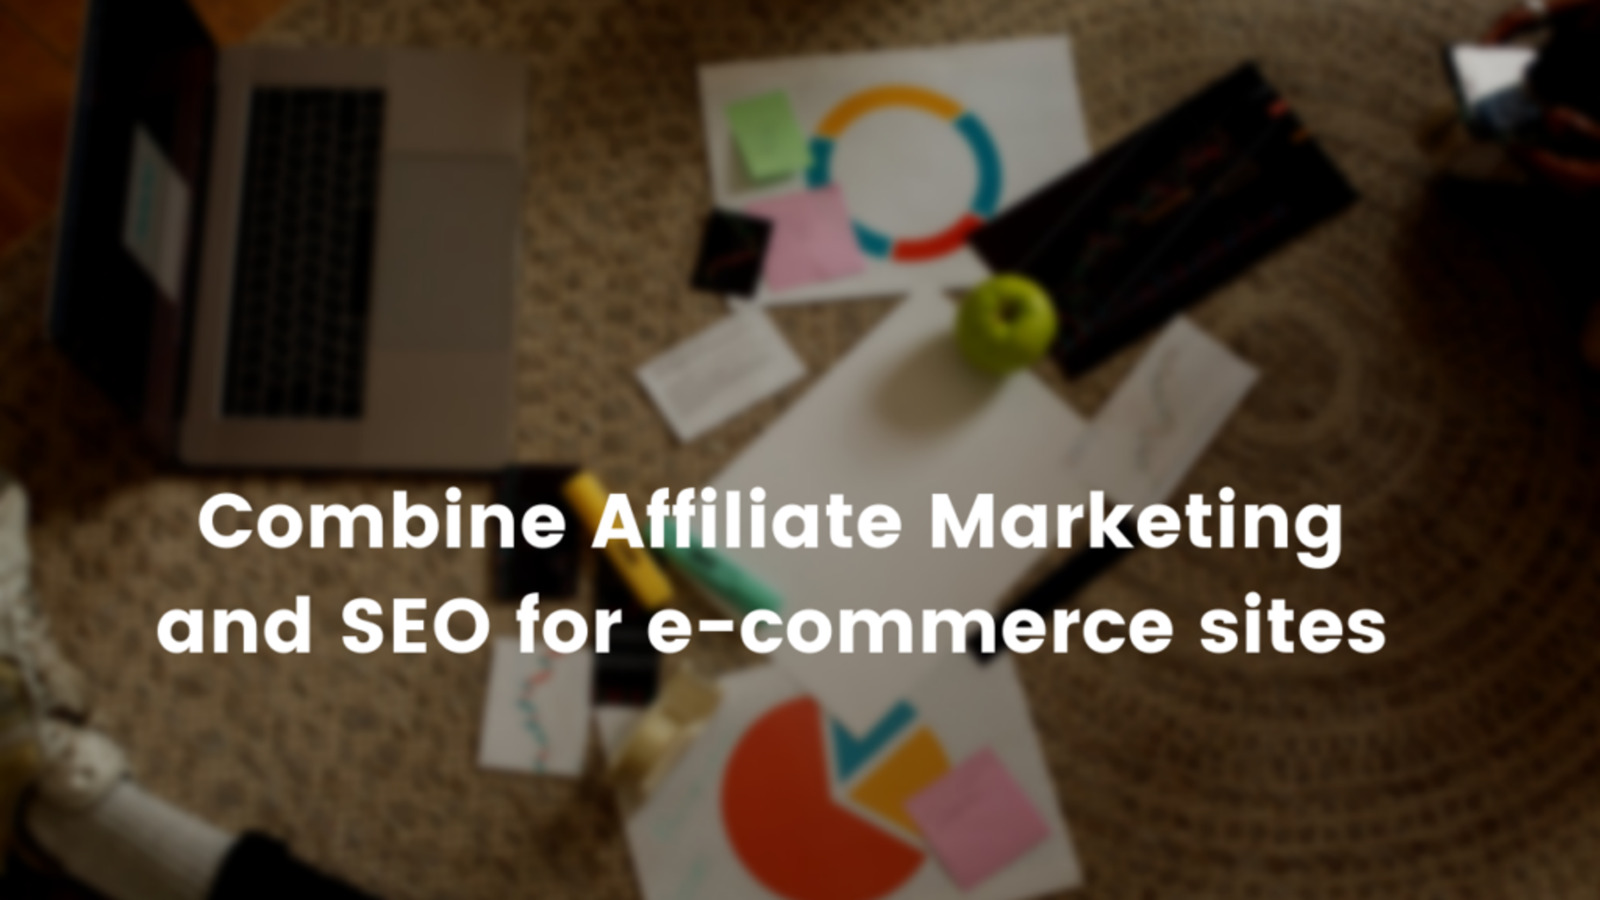 How to combine Affiliate Marketing and SEO for e-commerce sites for the best force